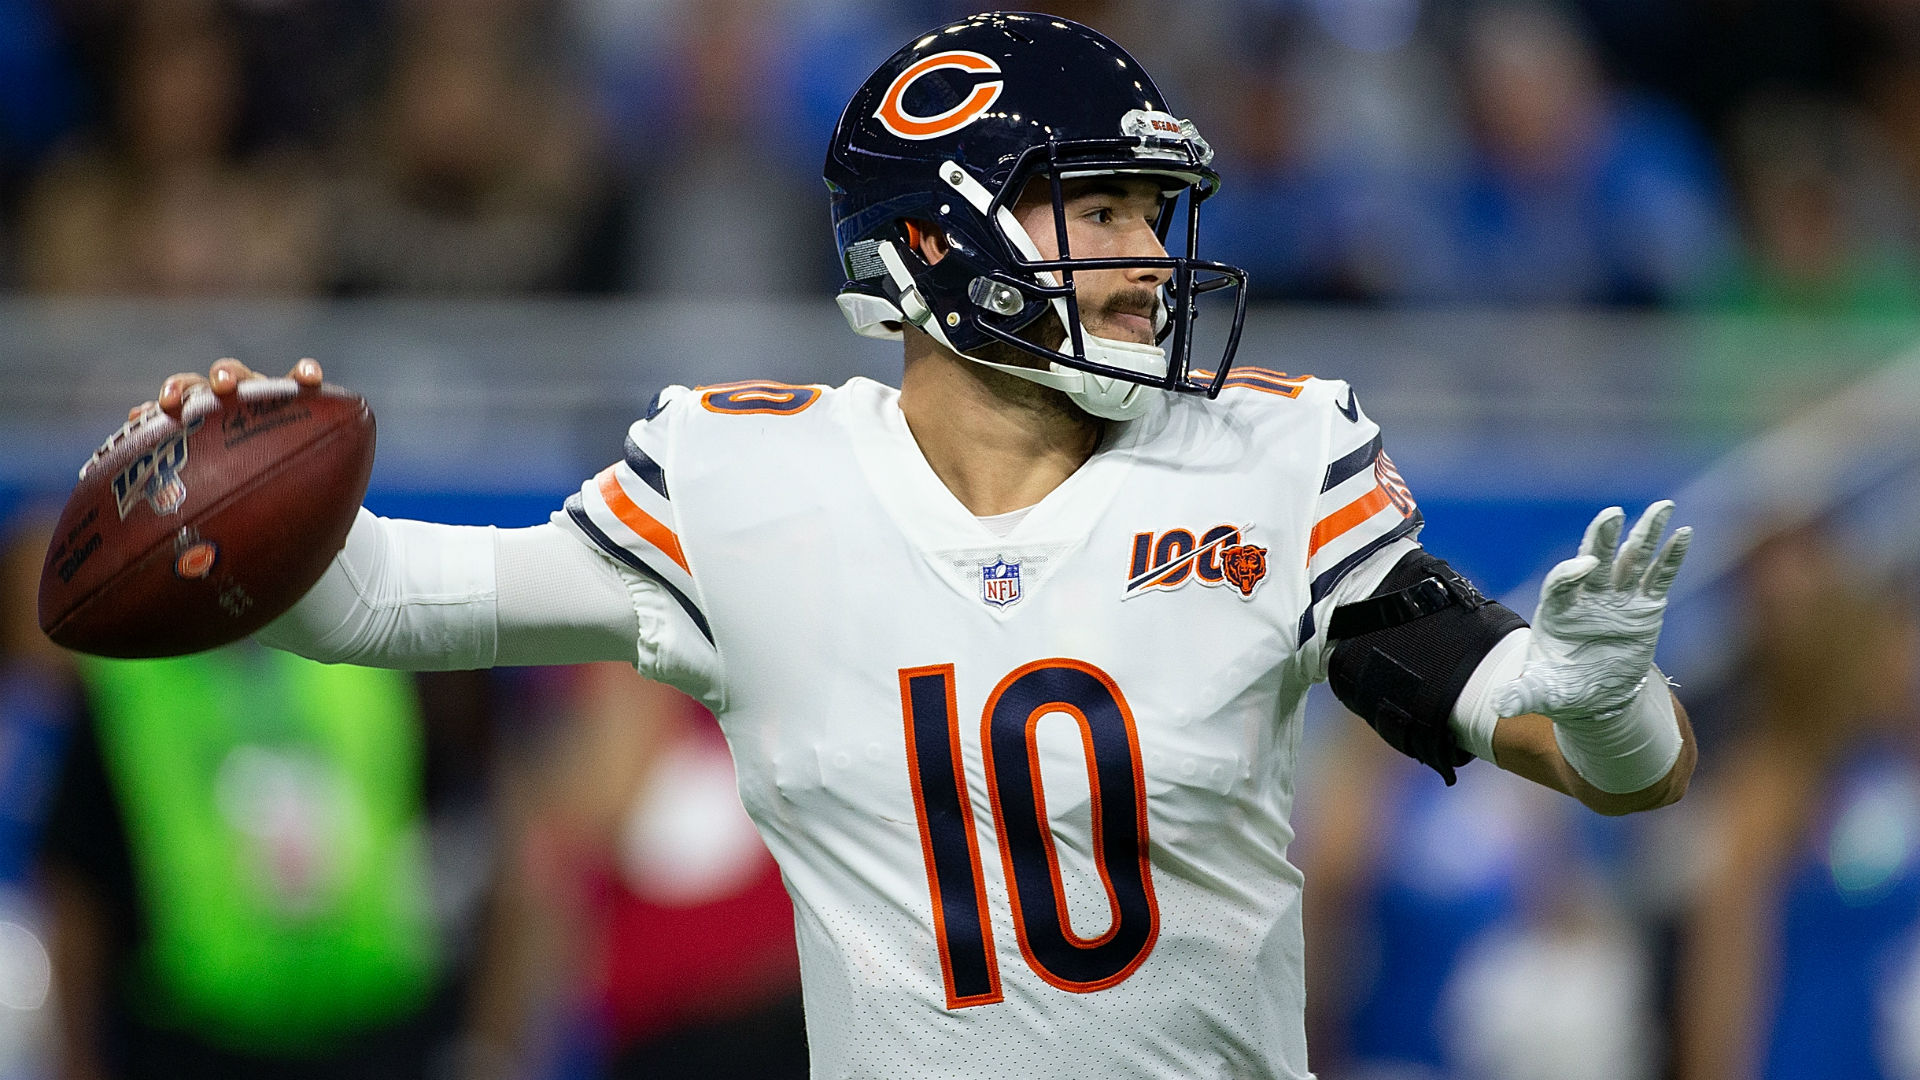 Should the Bears keep Mitchell Trubisky? Exploring Chicago's big QB free agency decision in 2021